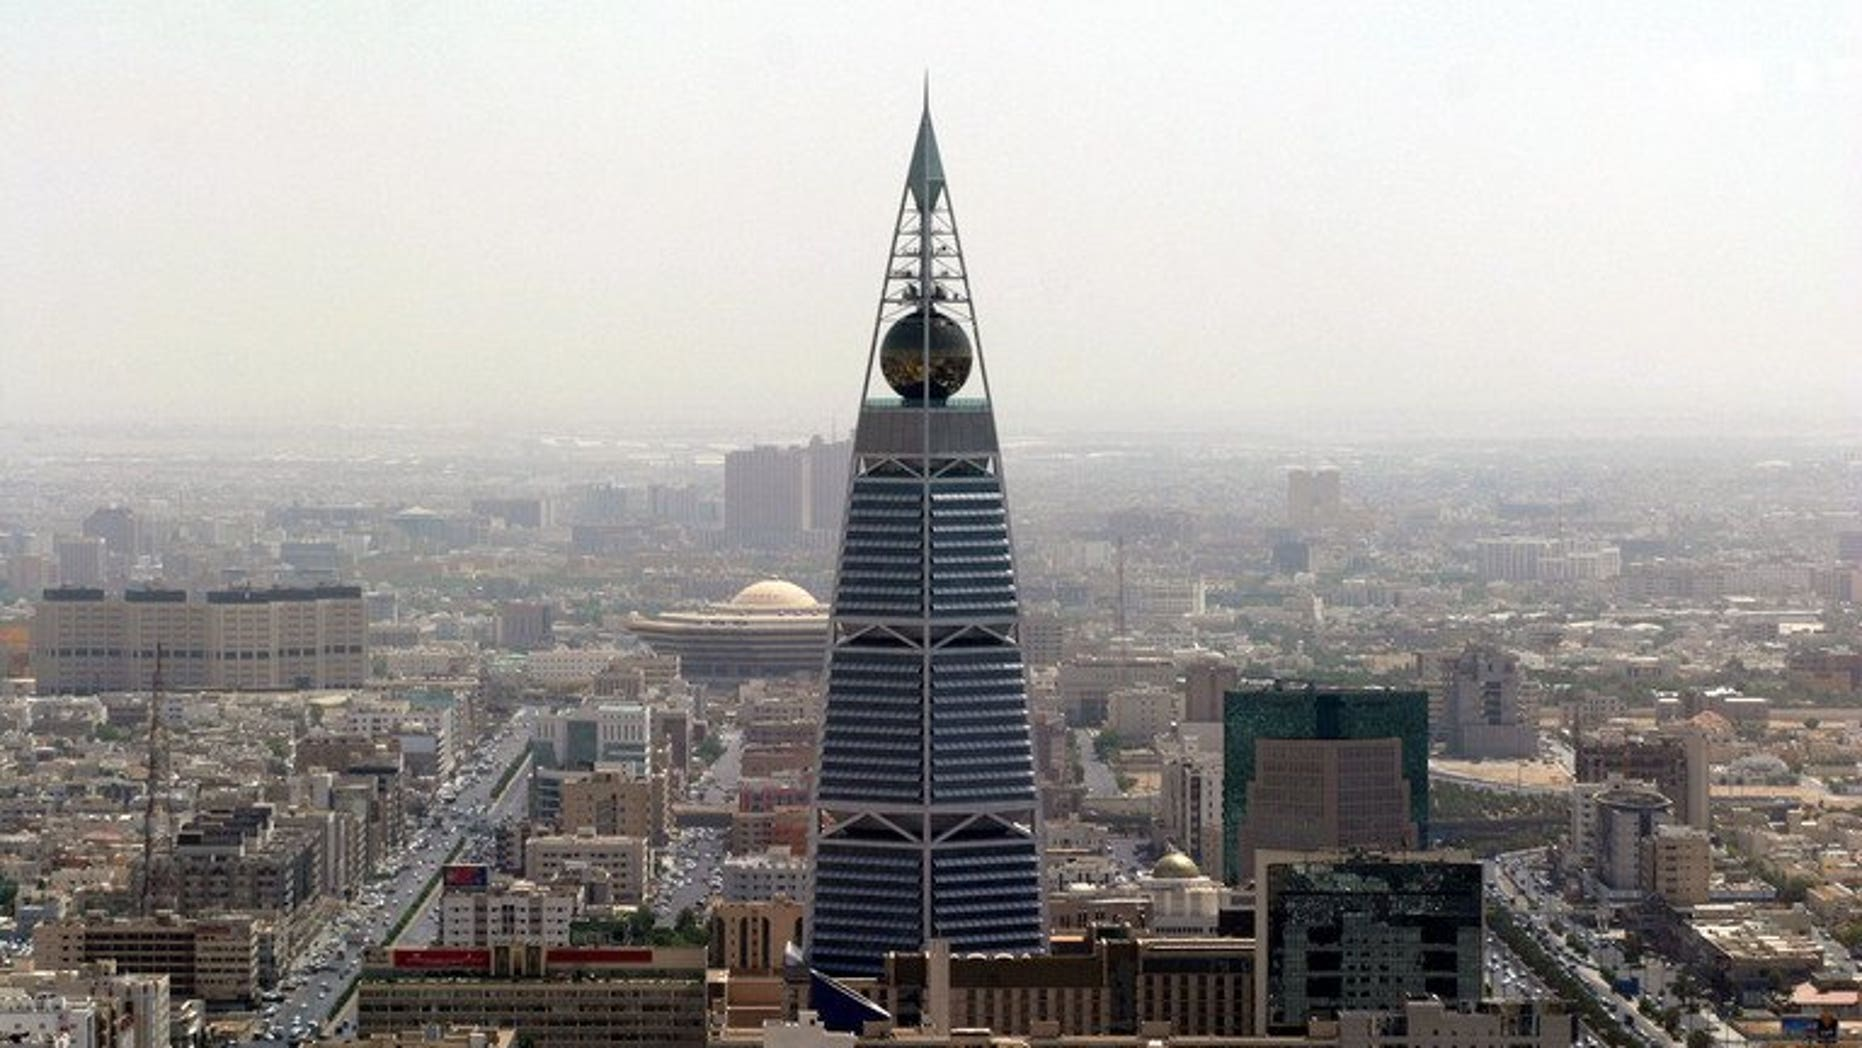 A general view of the Saudi capital Riyadh, on March 7, 2007. Human Rights Watch has criticised Saudi Arabia's criminal justice system after a court sentenced a prominent human rights activist to five years in prison over his writings.